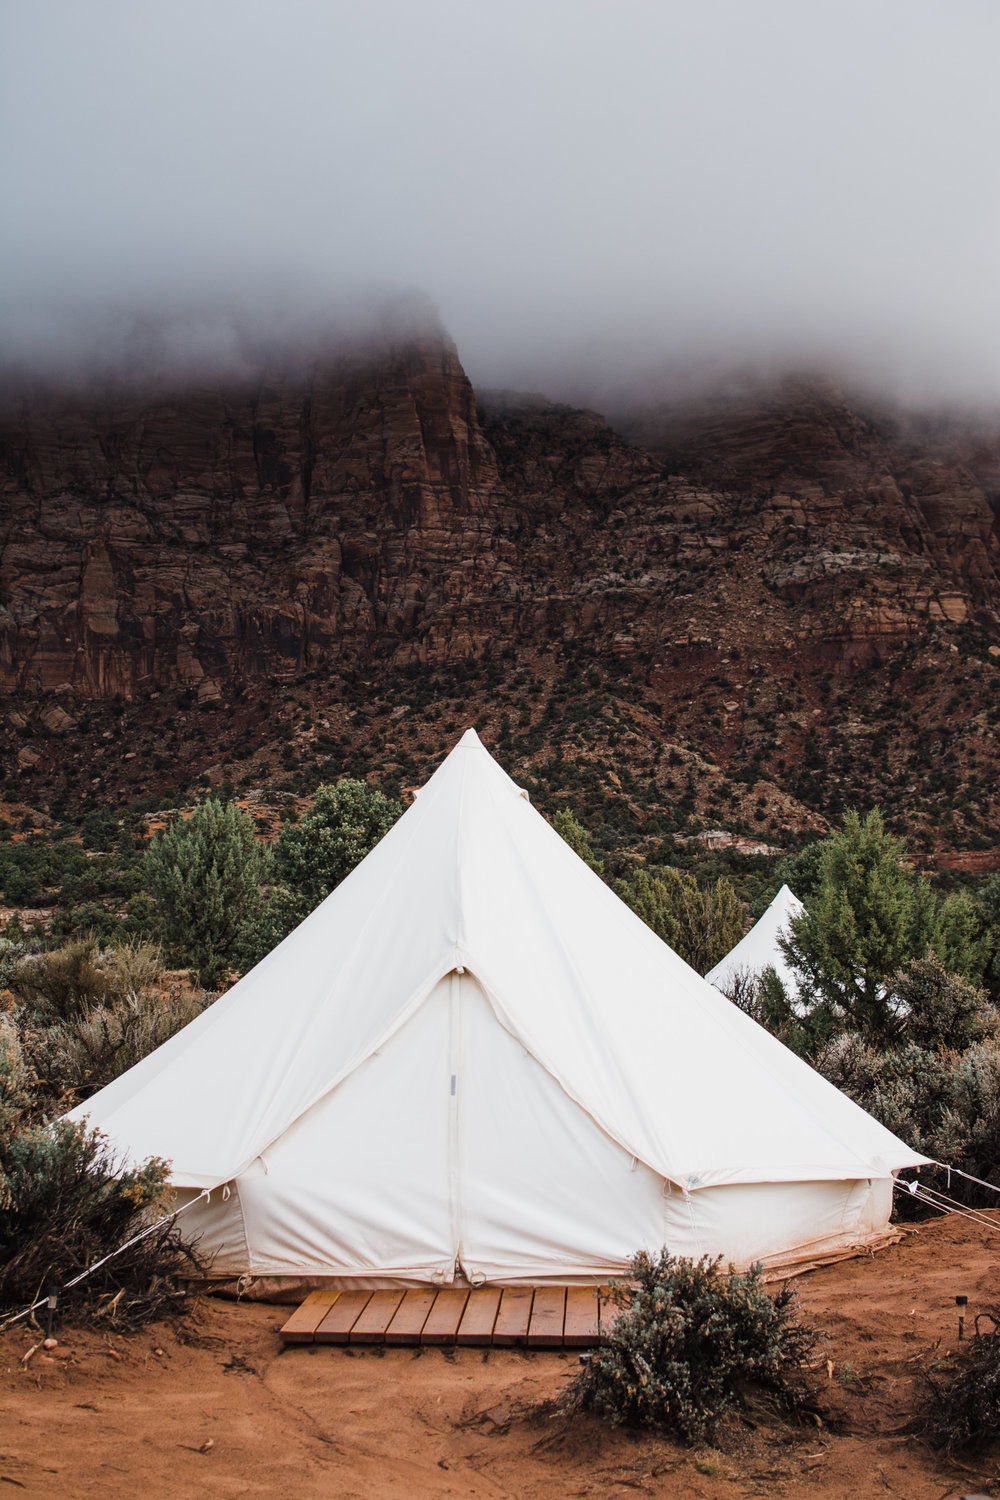 The fog had rested over the red cliffs behind our tent after the thunderstorm during the night.